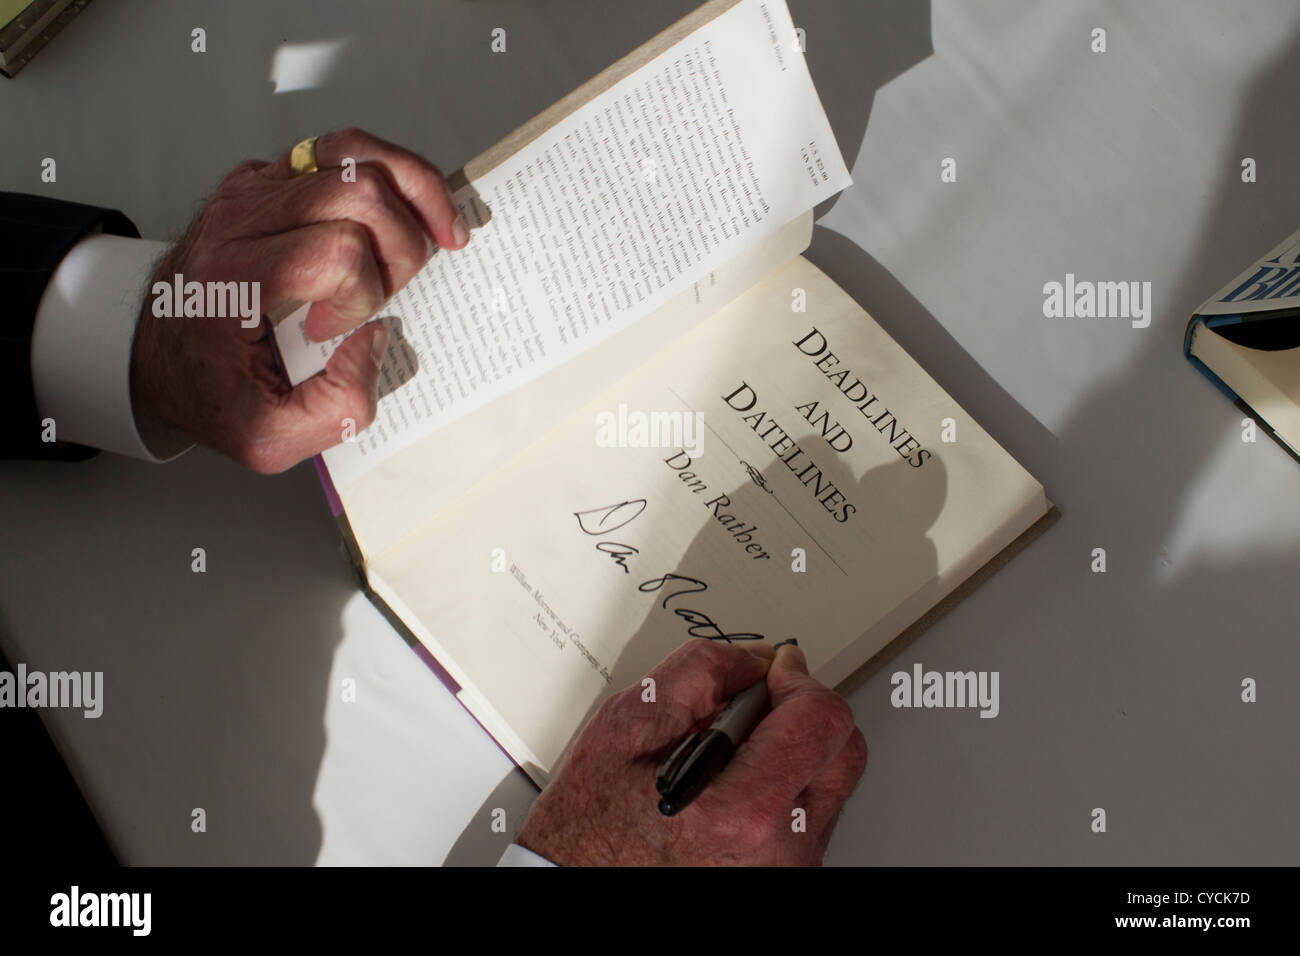 Journalist Dan Rather signs a copy of his book 'Deadlines and Datelines' for a fan at the Texas Book Festival - Stock Image